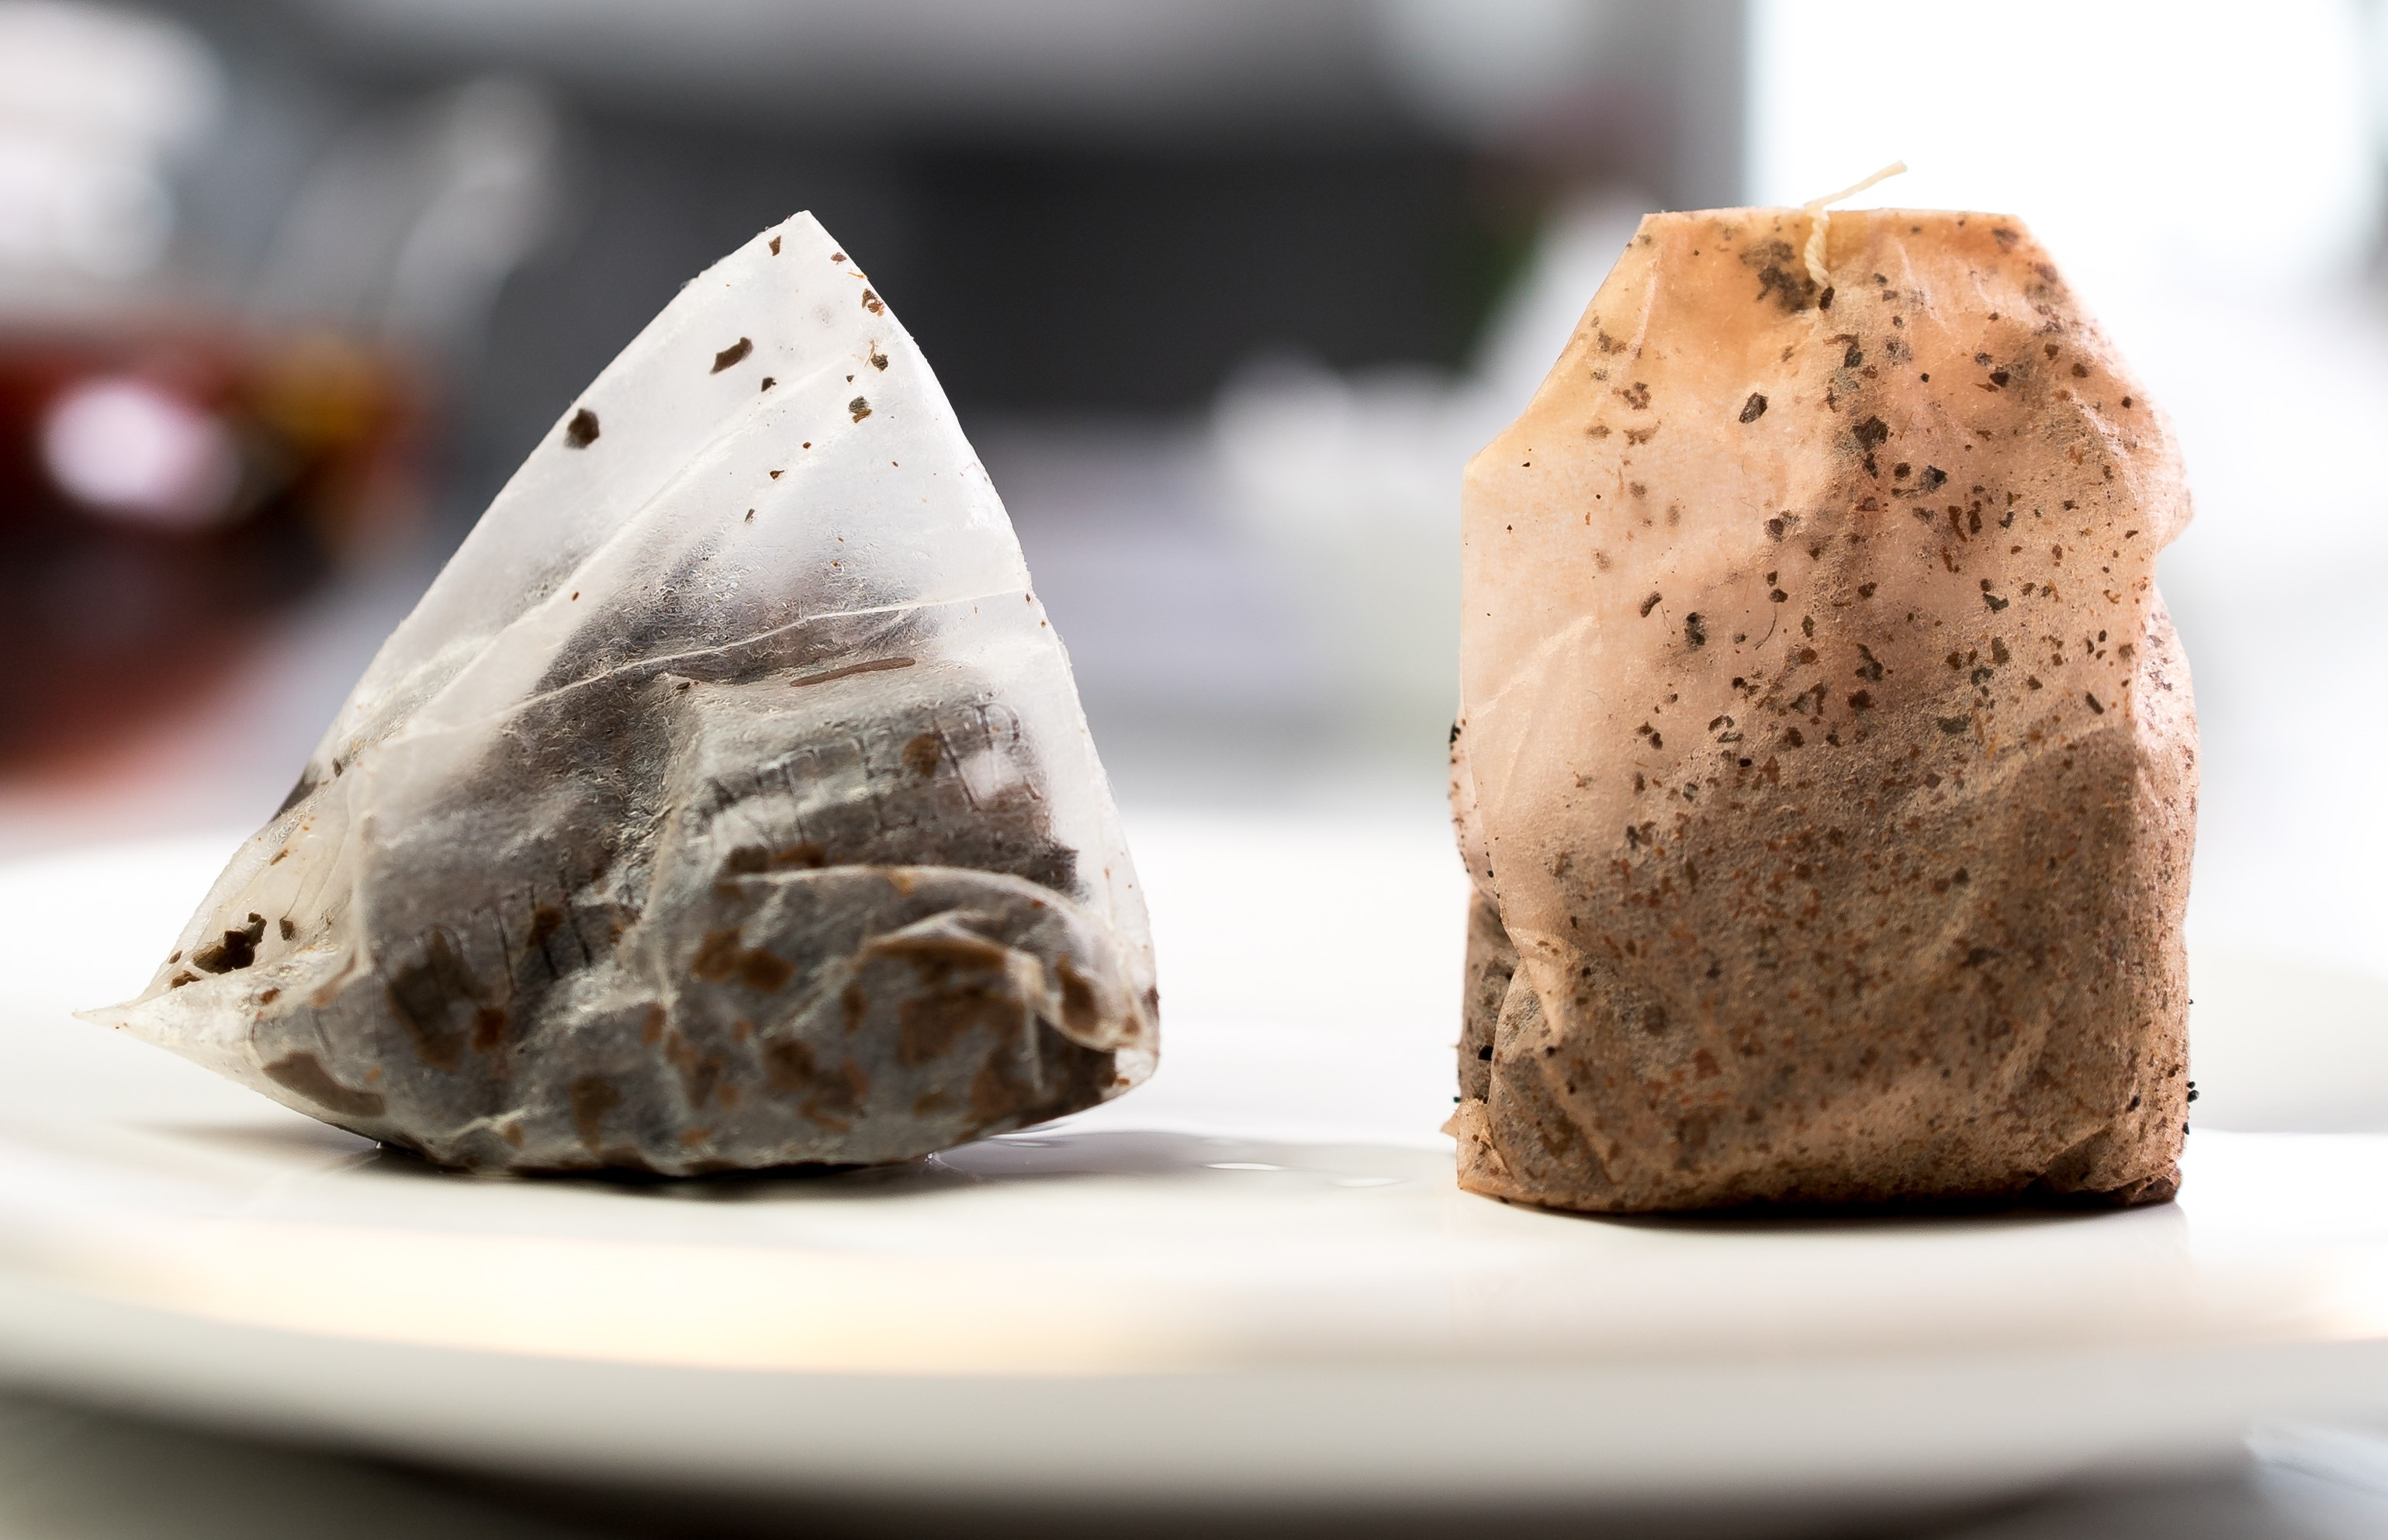 Plastic Free Tea Bags Remain a Concern, But Are the Solutions Really Socially Responsible?